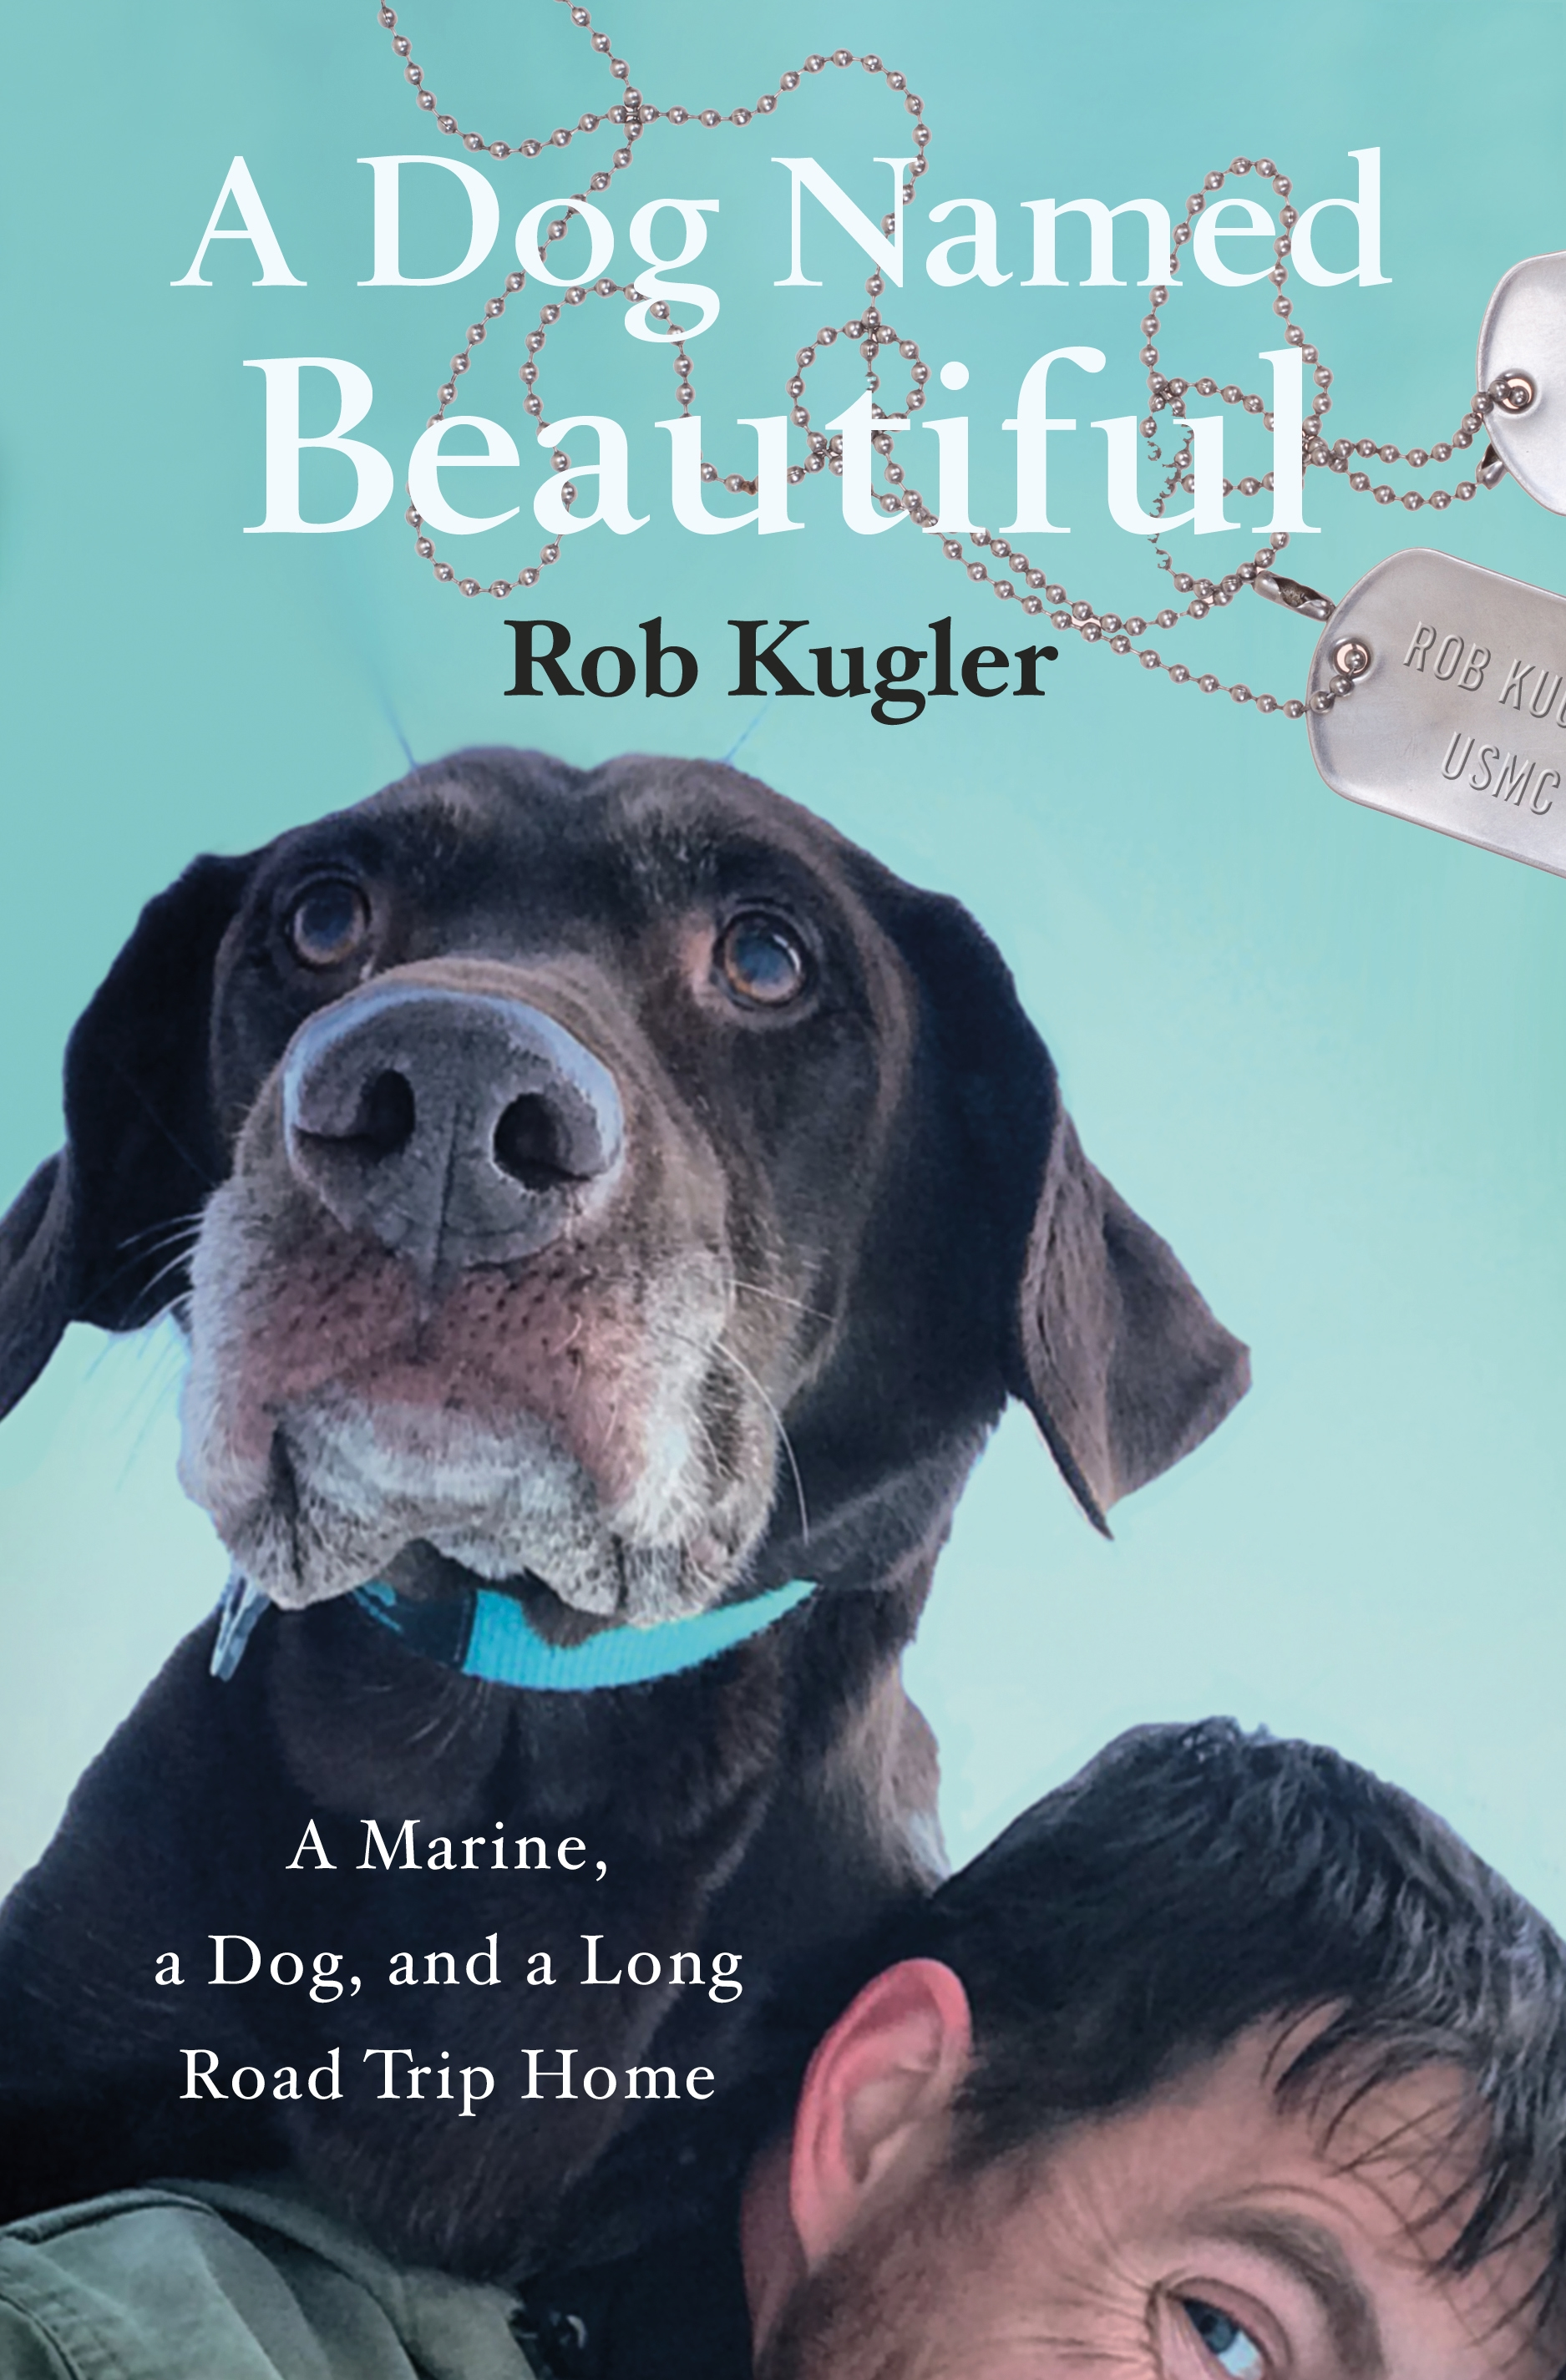 Kugler's book, which is both heartbreaking and uplifting, brings readers inside the close bond he and Bella shared.